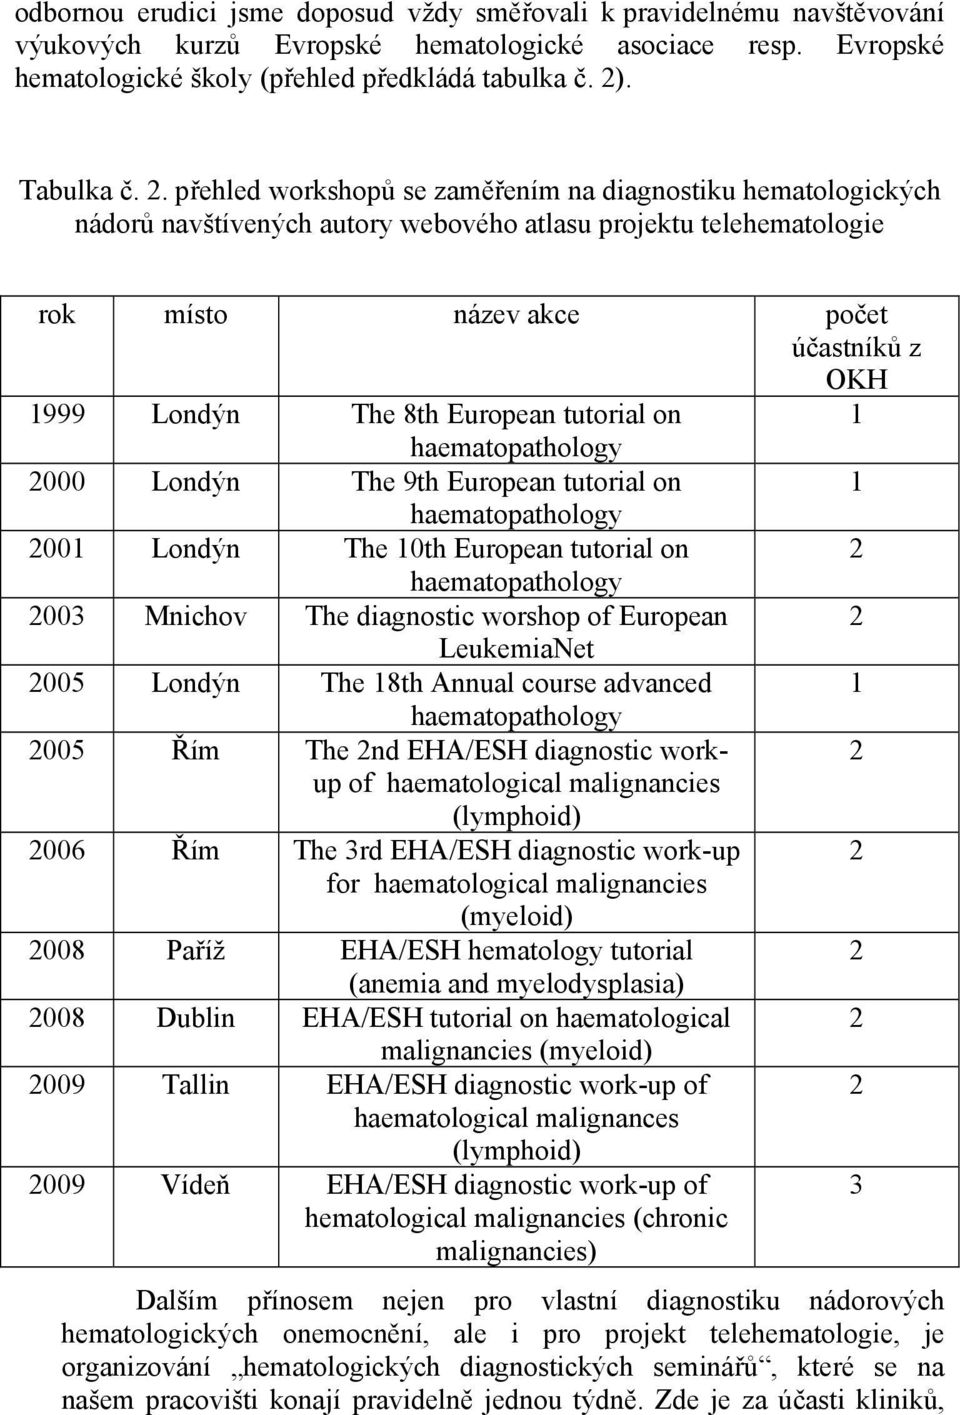 European tutorial on 1 haematopathology 2000 Londýn The 9th European tutorial on 1 haematopathology 2001 Londýn The 10th European tutorial on 2 haematopathology 2003 Mnichov The diagnostic worshop of